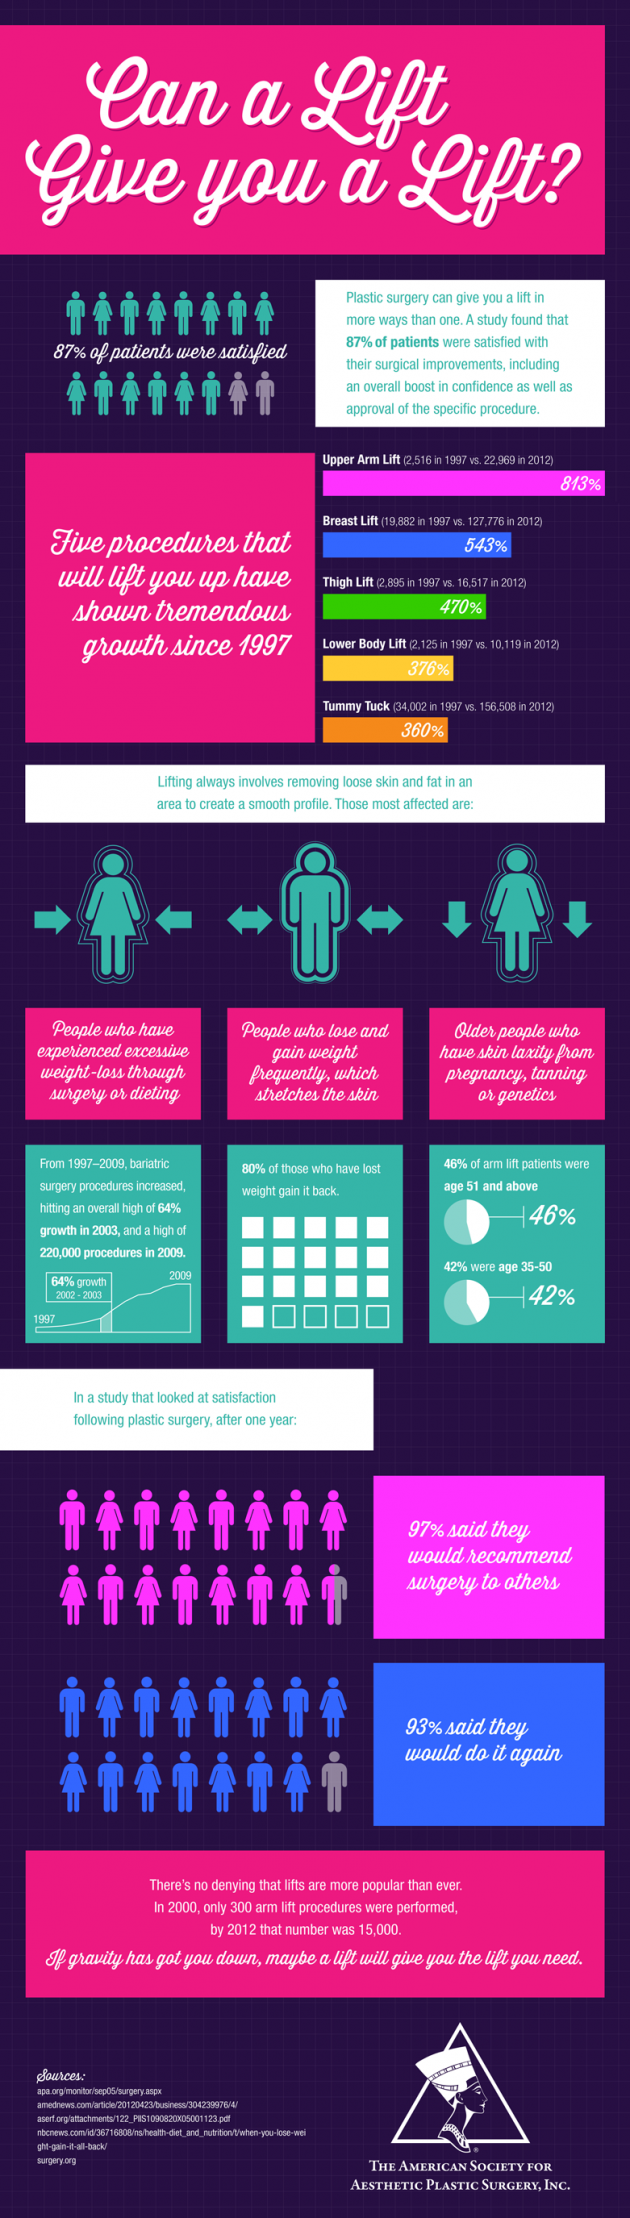 How can plastic surgery lift you up? Let me count the ways. [INFOGRAPHIC]